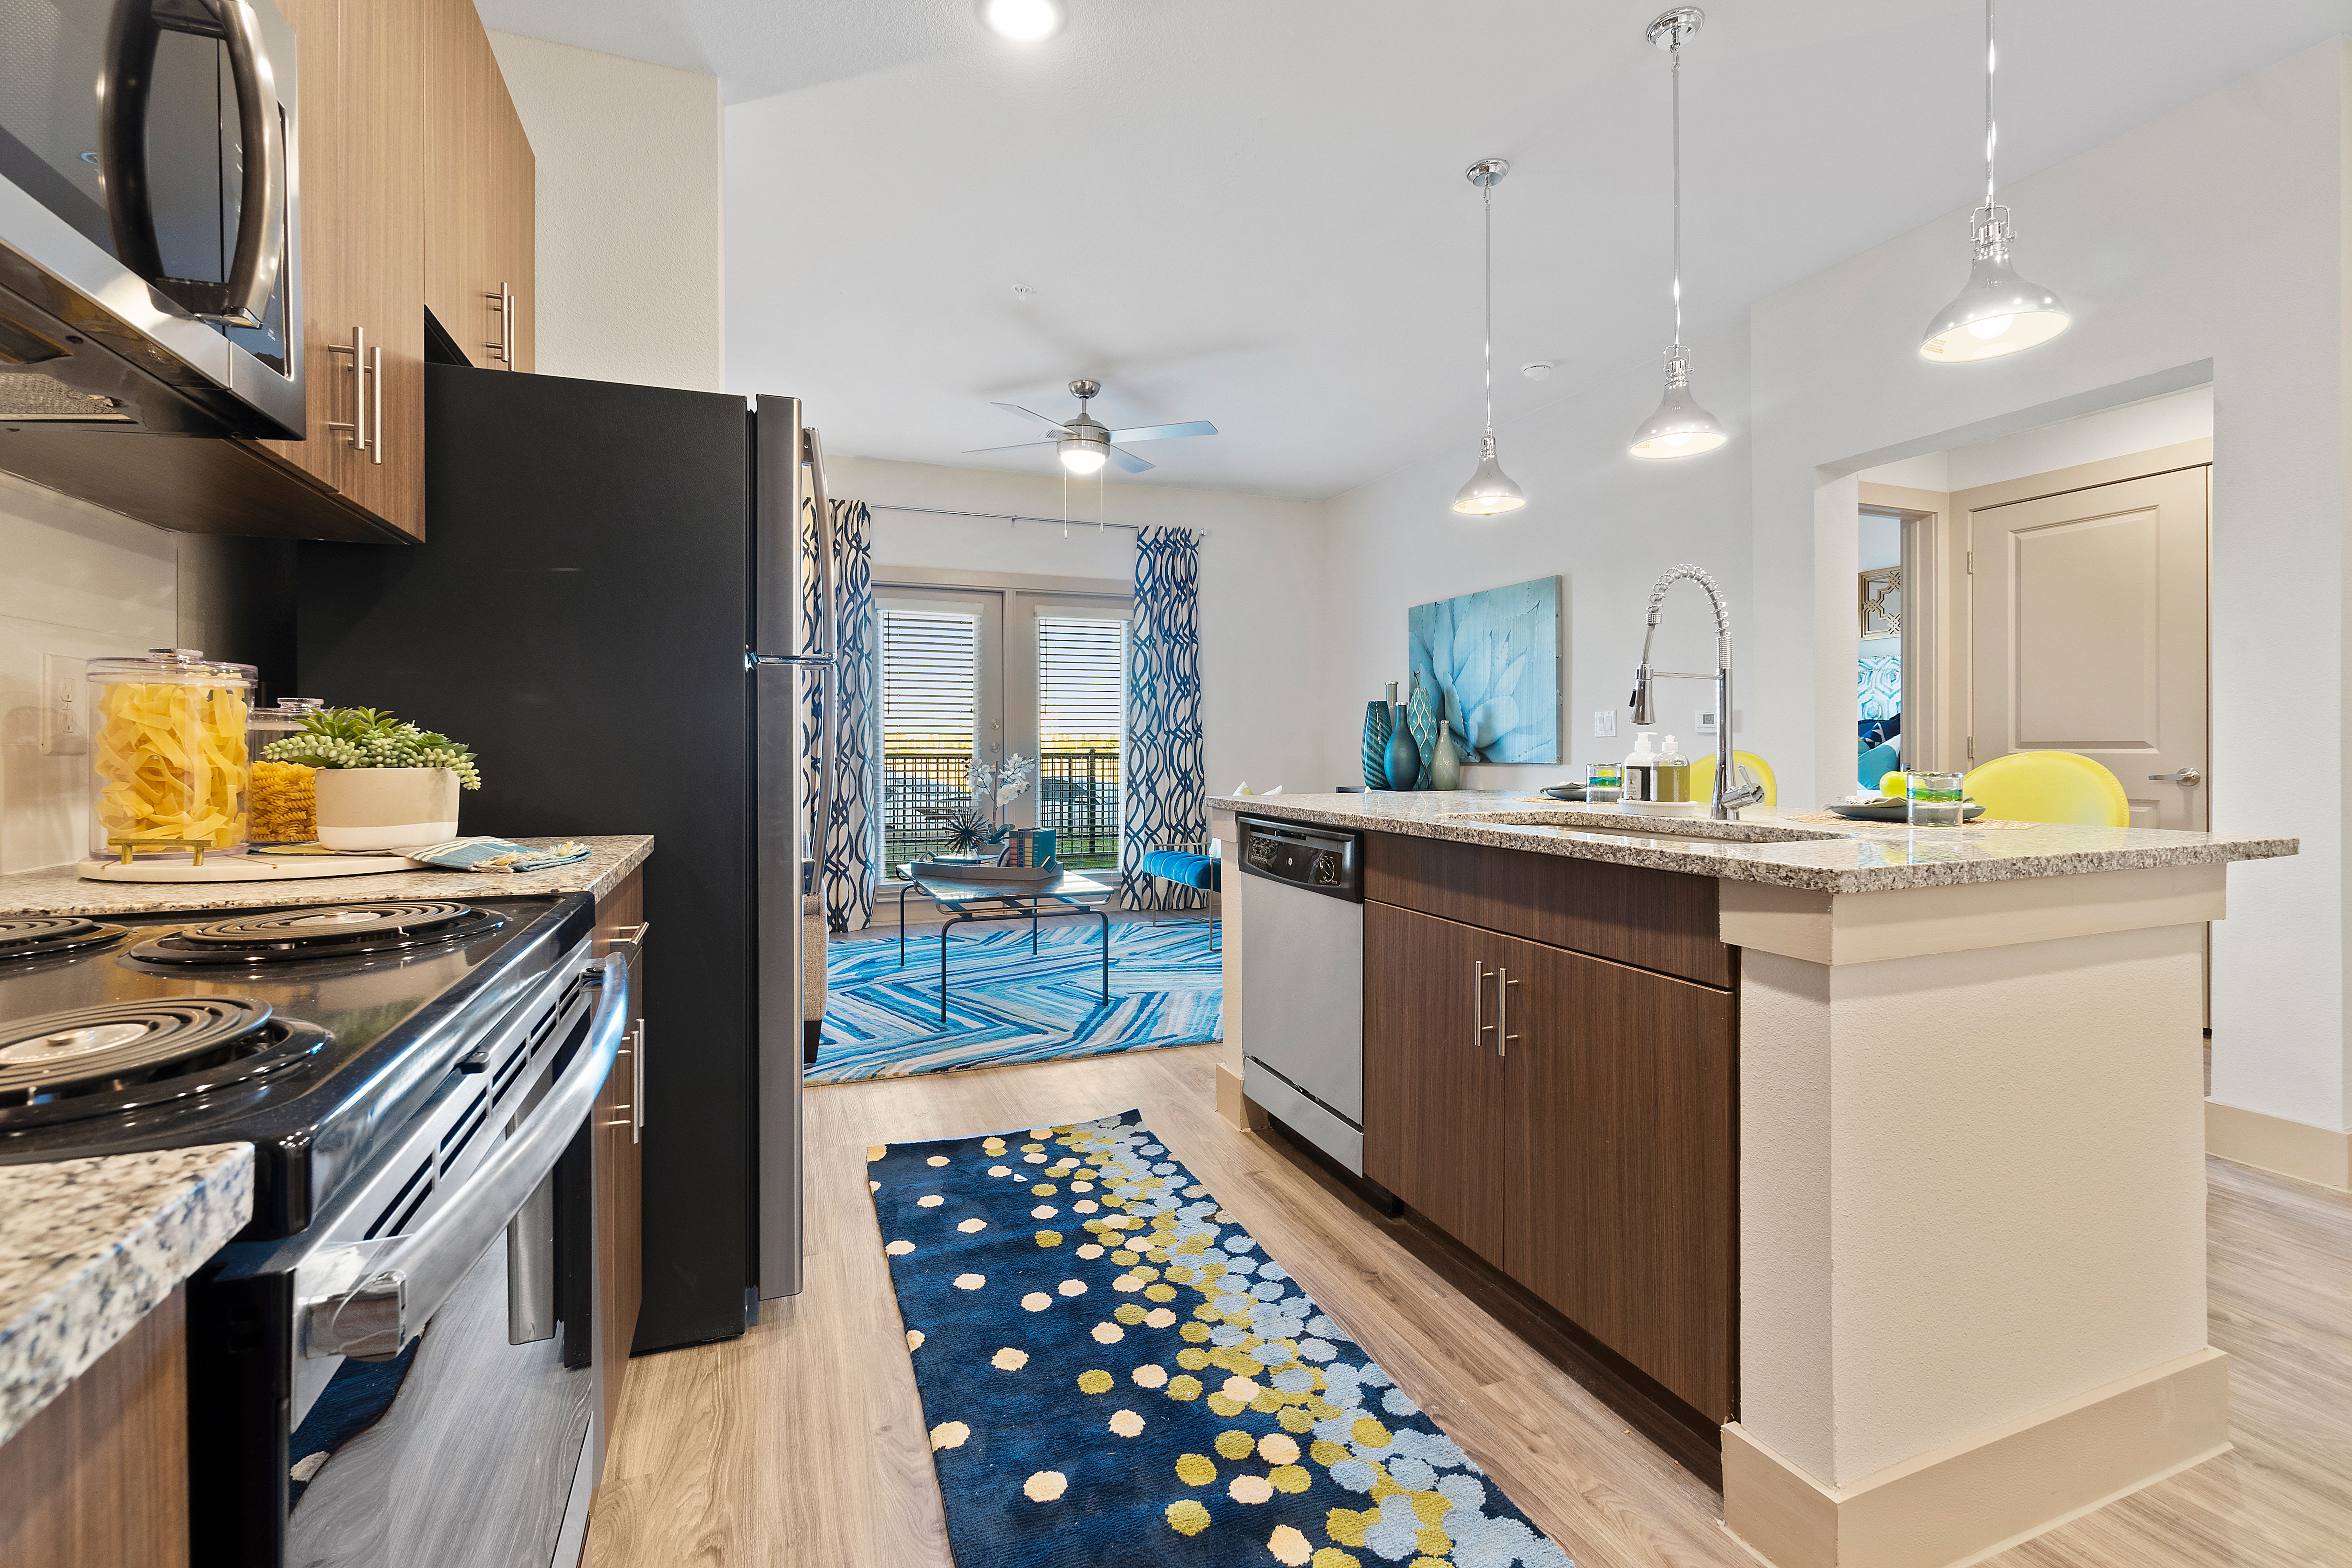 Kitchen with a breakfast bar at McCarty Commons in San Marcos, Texas